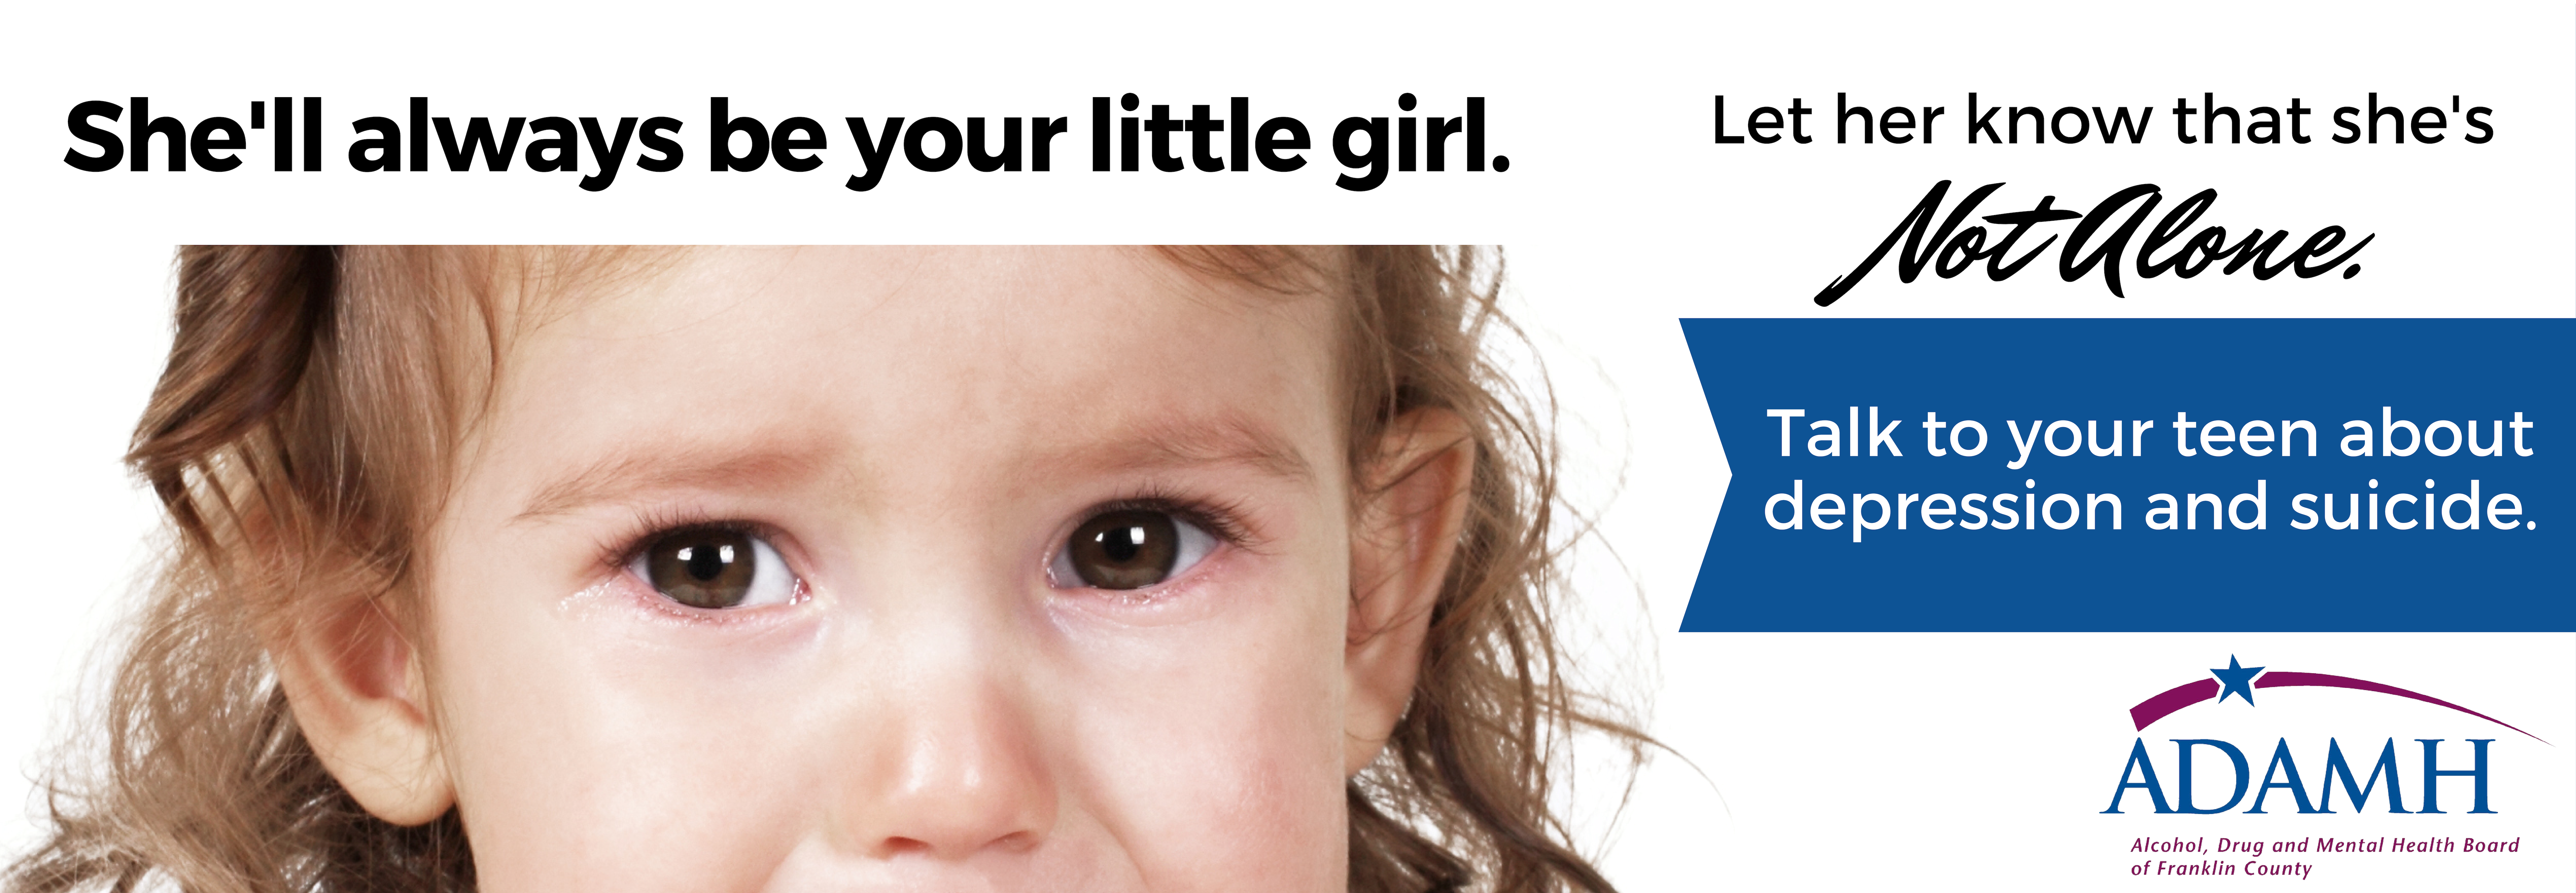 Shell-always-be-your-little-girl.